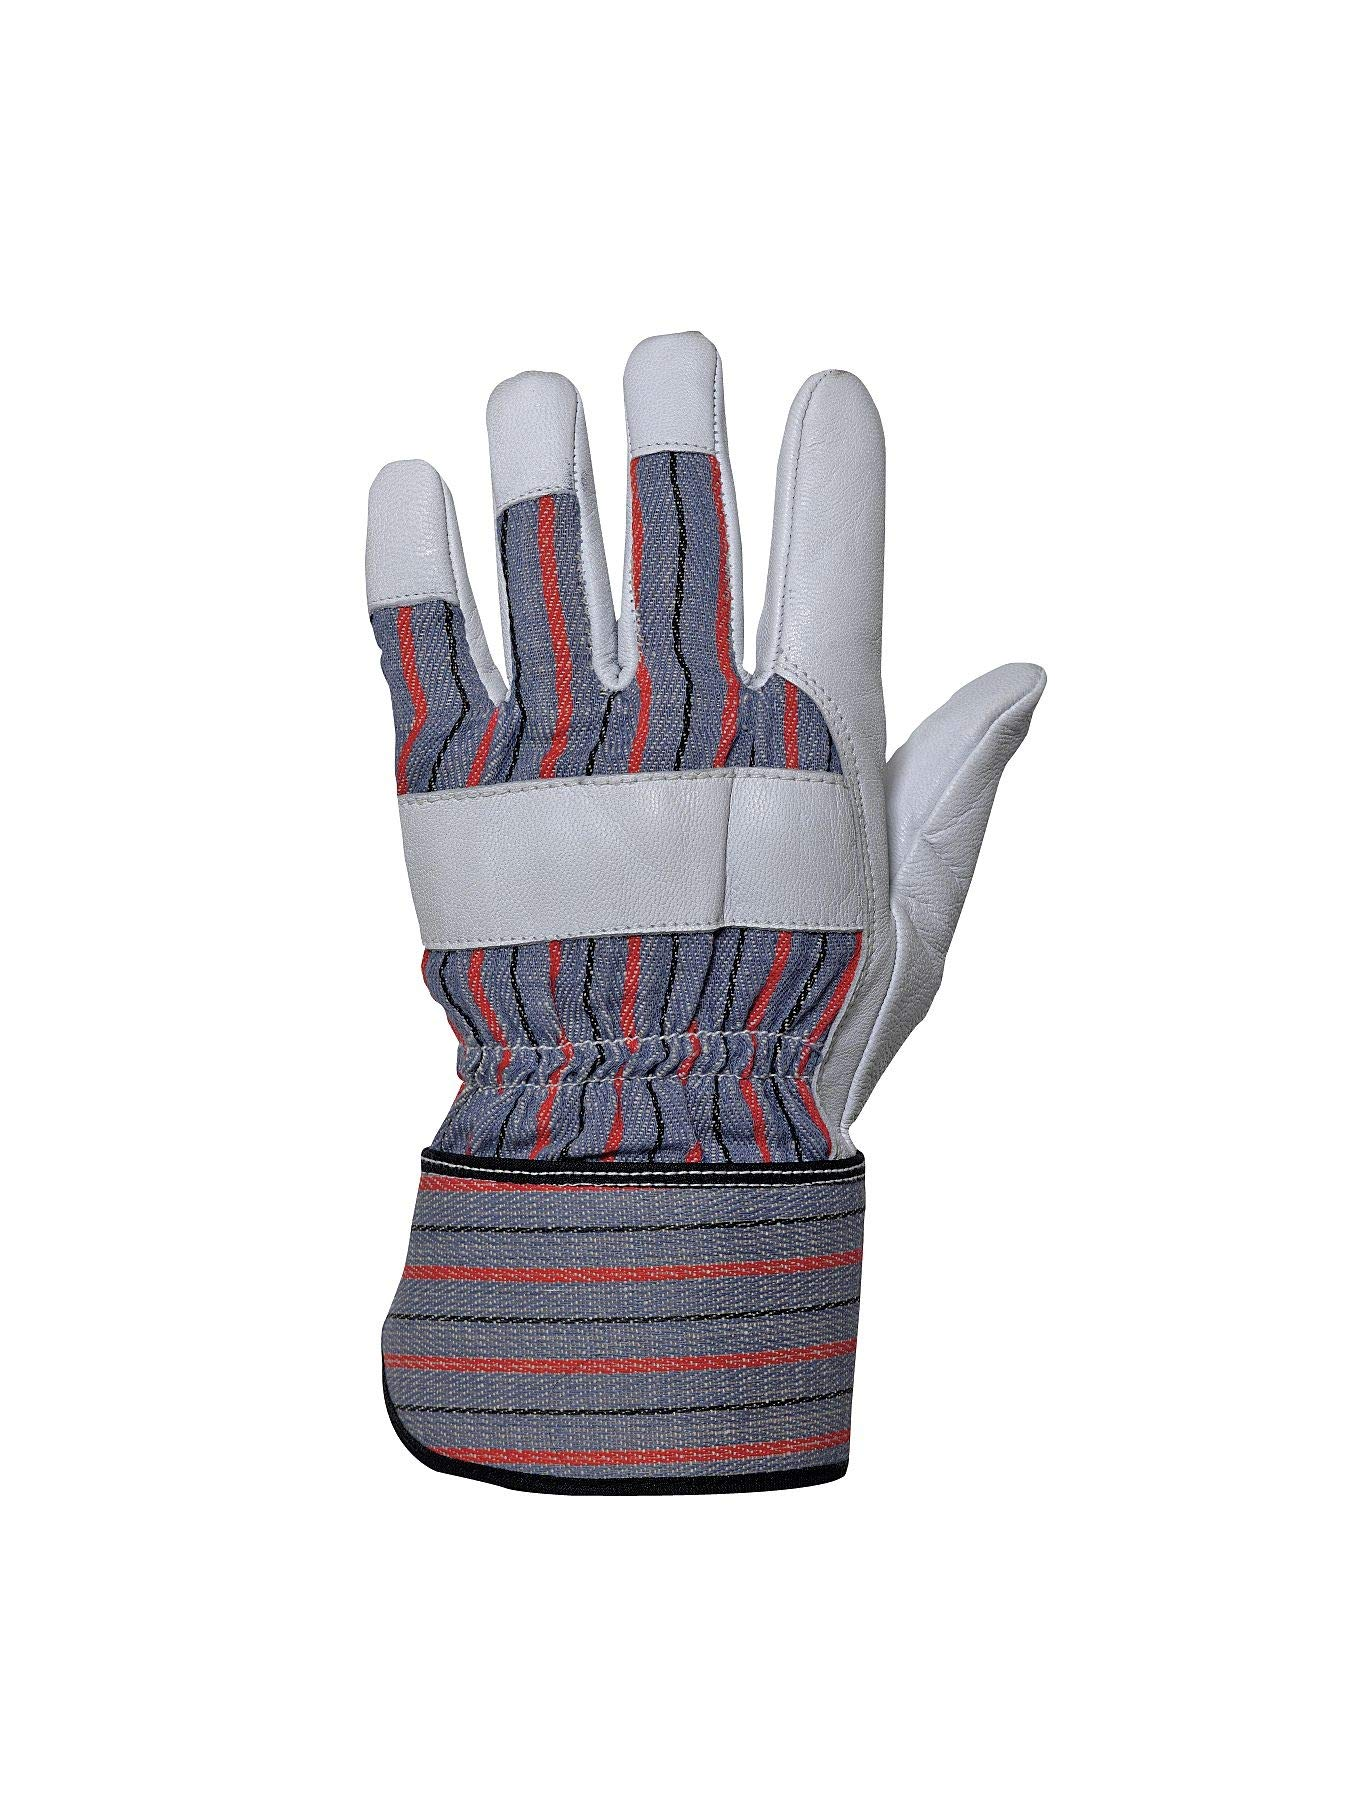 Impacto Anti-Vibration Gloves, Leather Palm Material, White, M, PR 1 - BGFITL-M